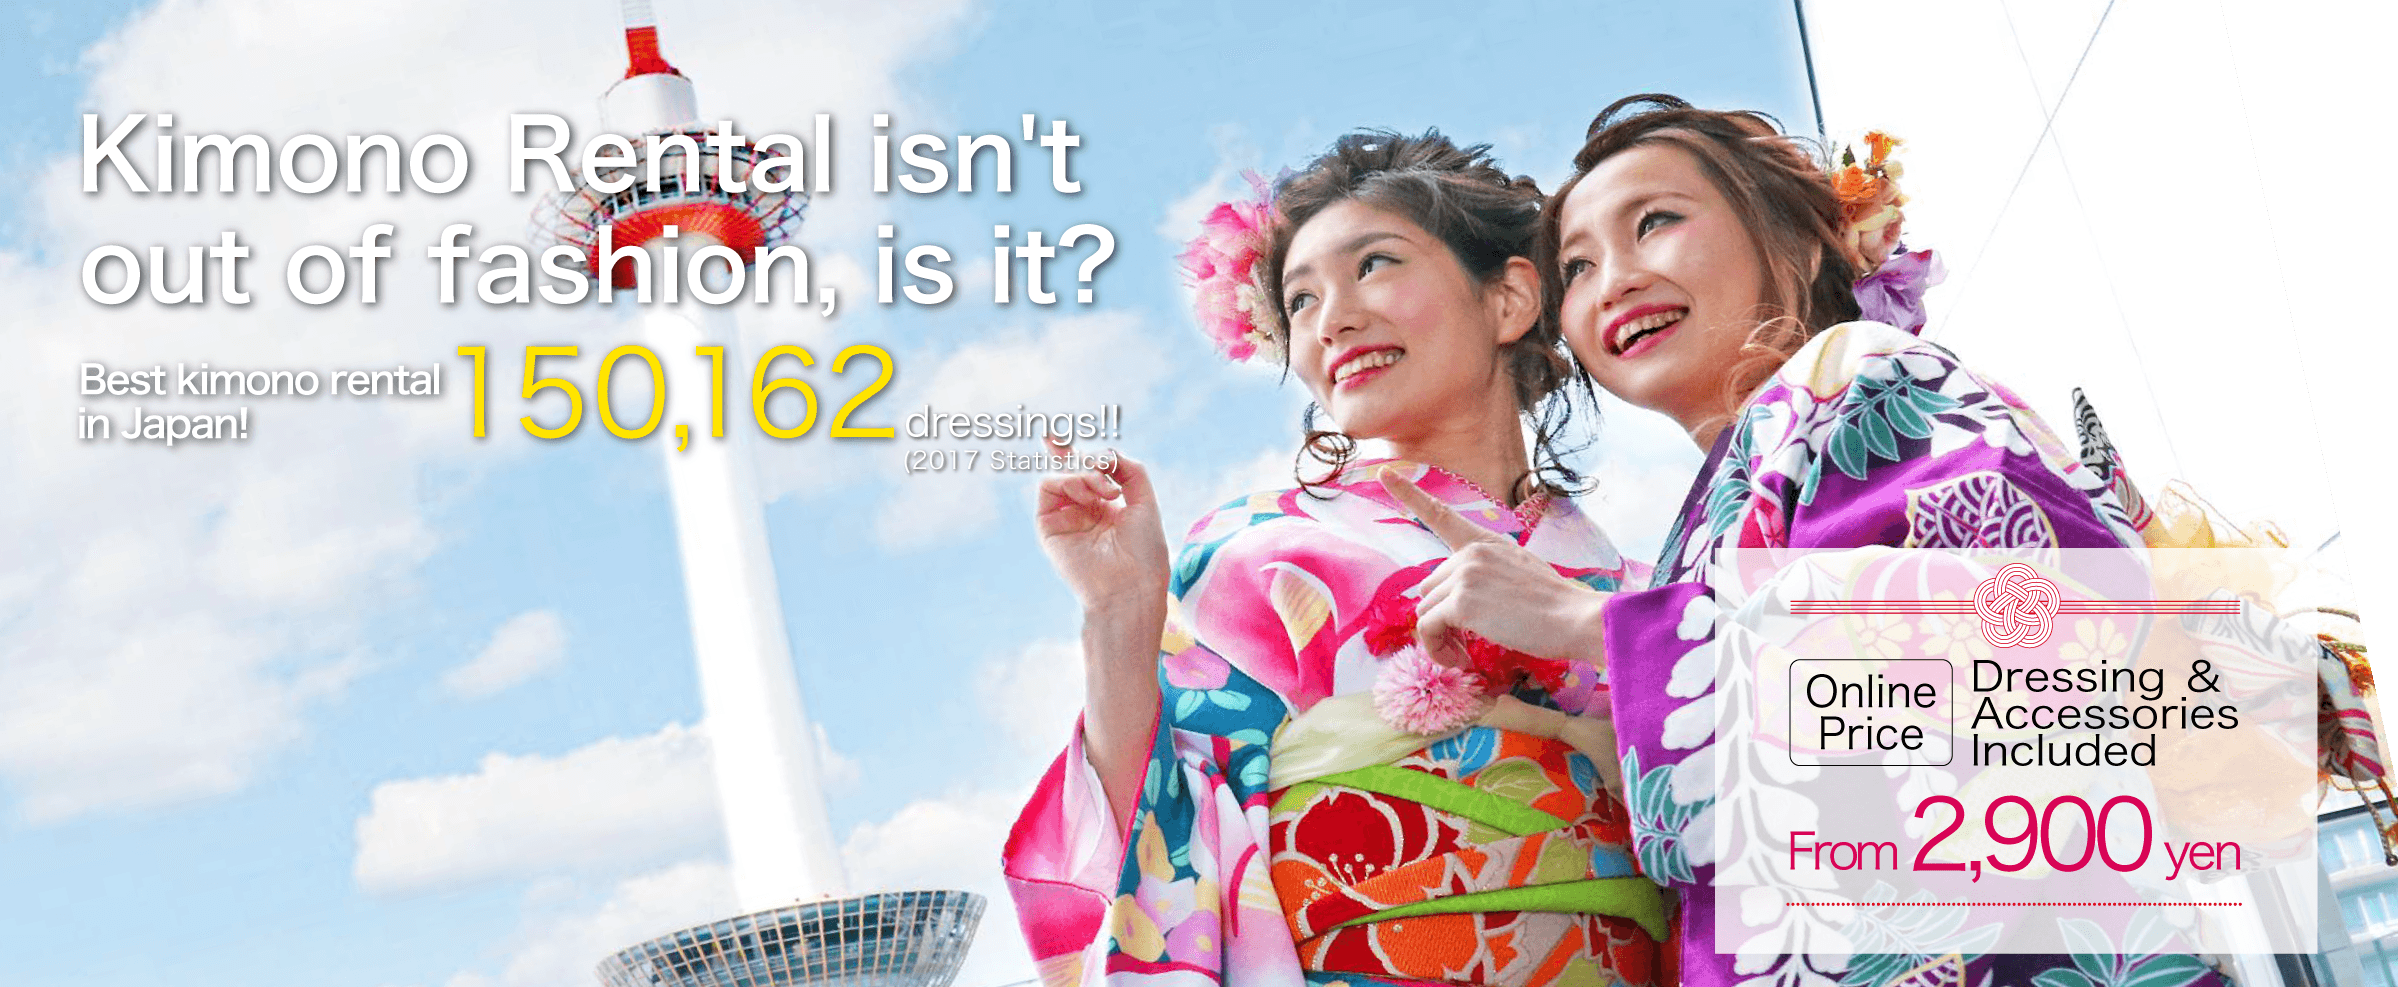 Kimono Rental isn't out of fashion, is it? Best kimono rental in Japan!